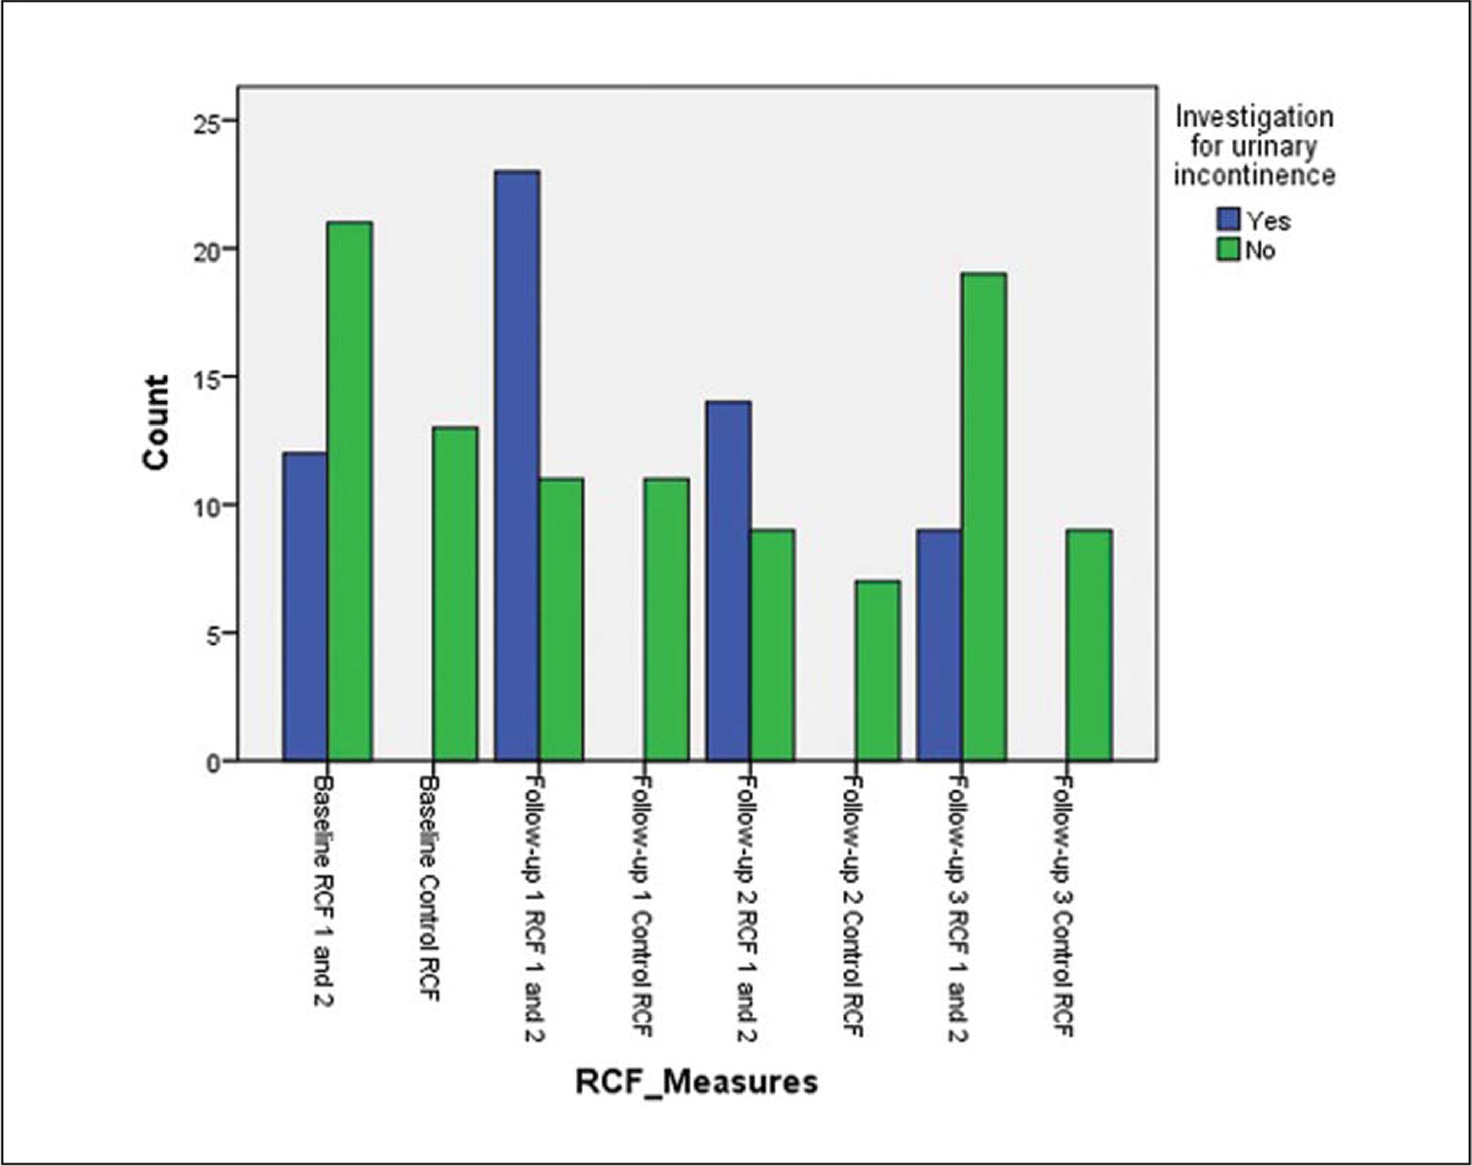 Cross tabulation between the number of urinary incontinence assessments conducted in the implementation residential care facilities (RCFs) and control RCF before, during, and after implementing a person-centered approach.